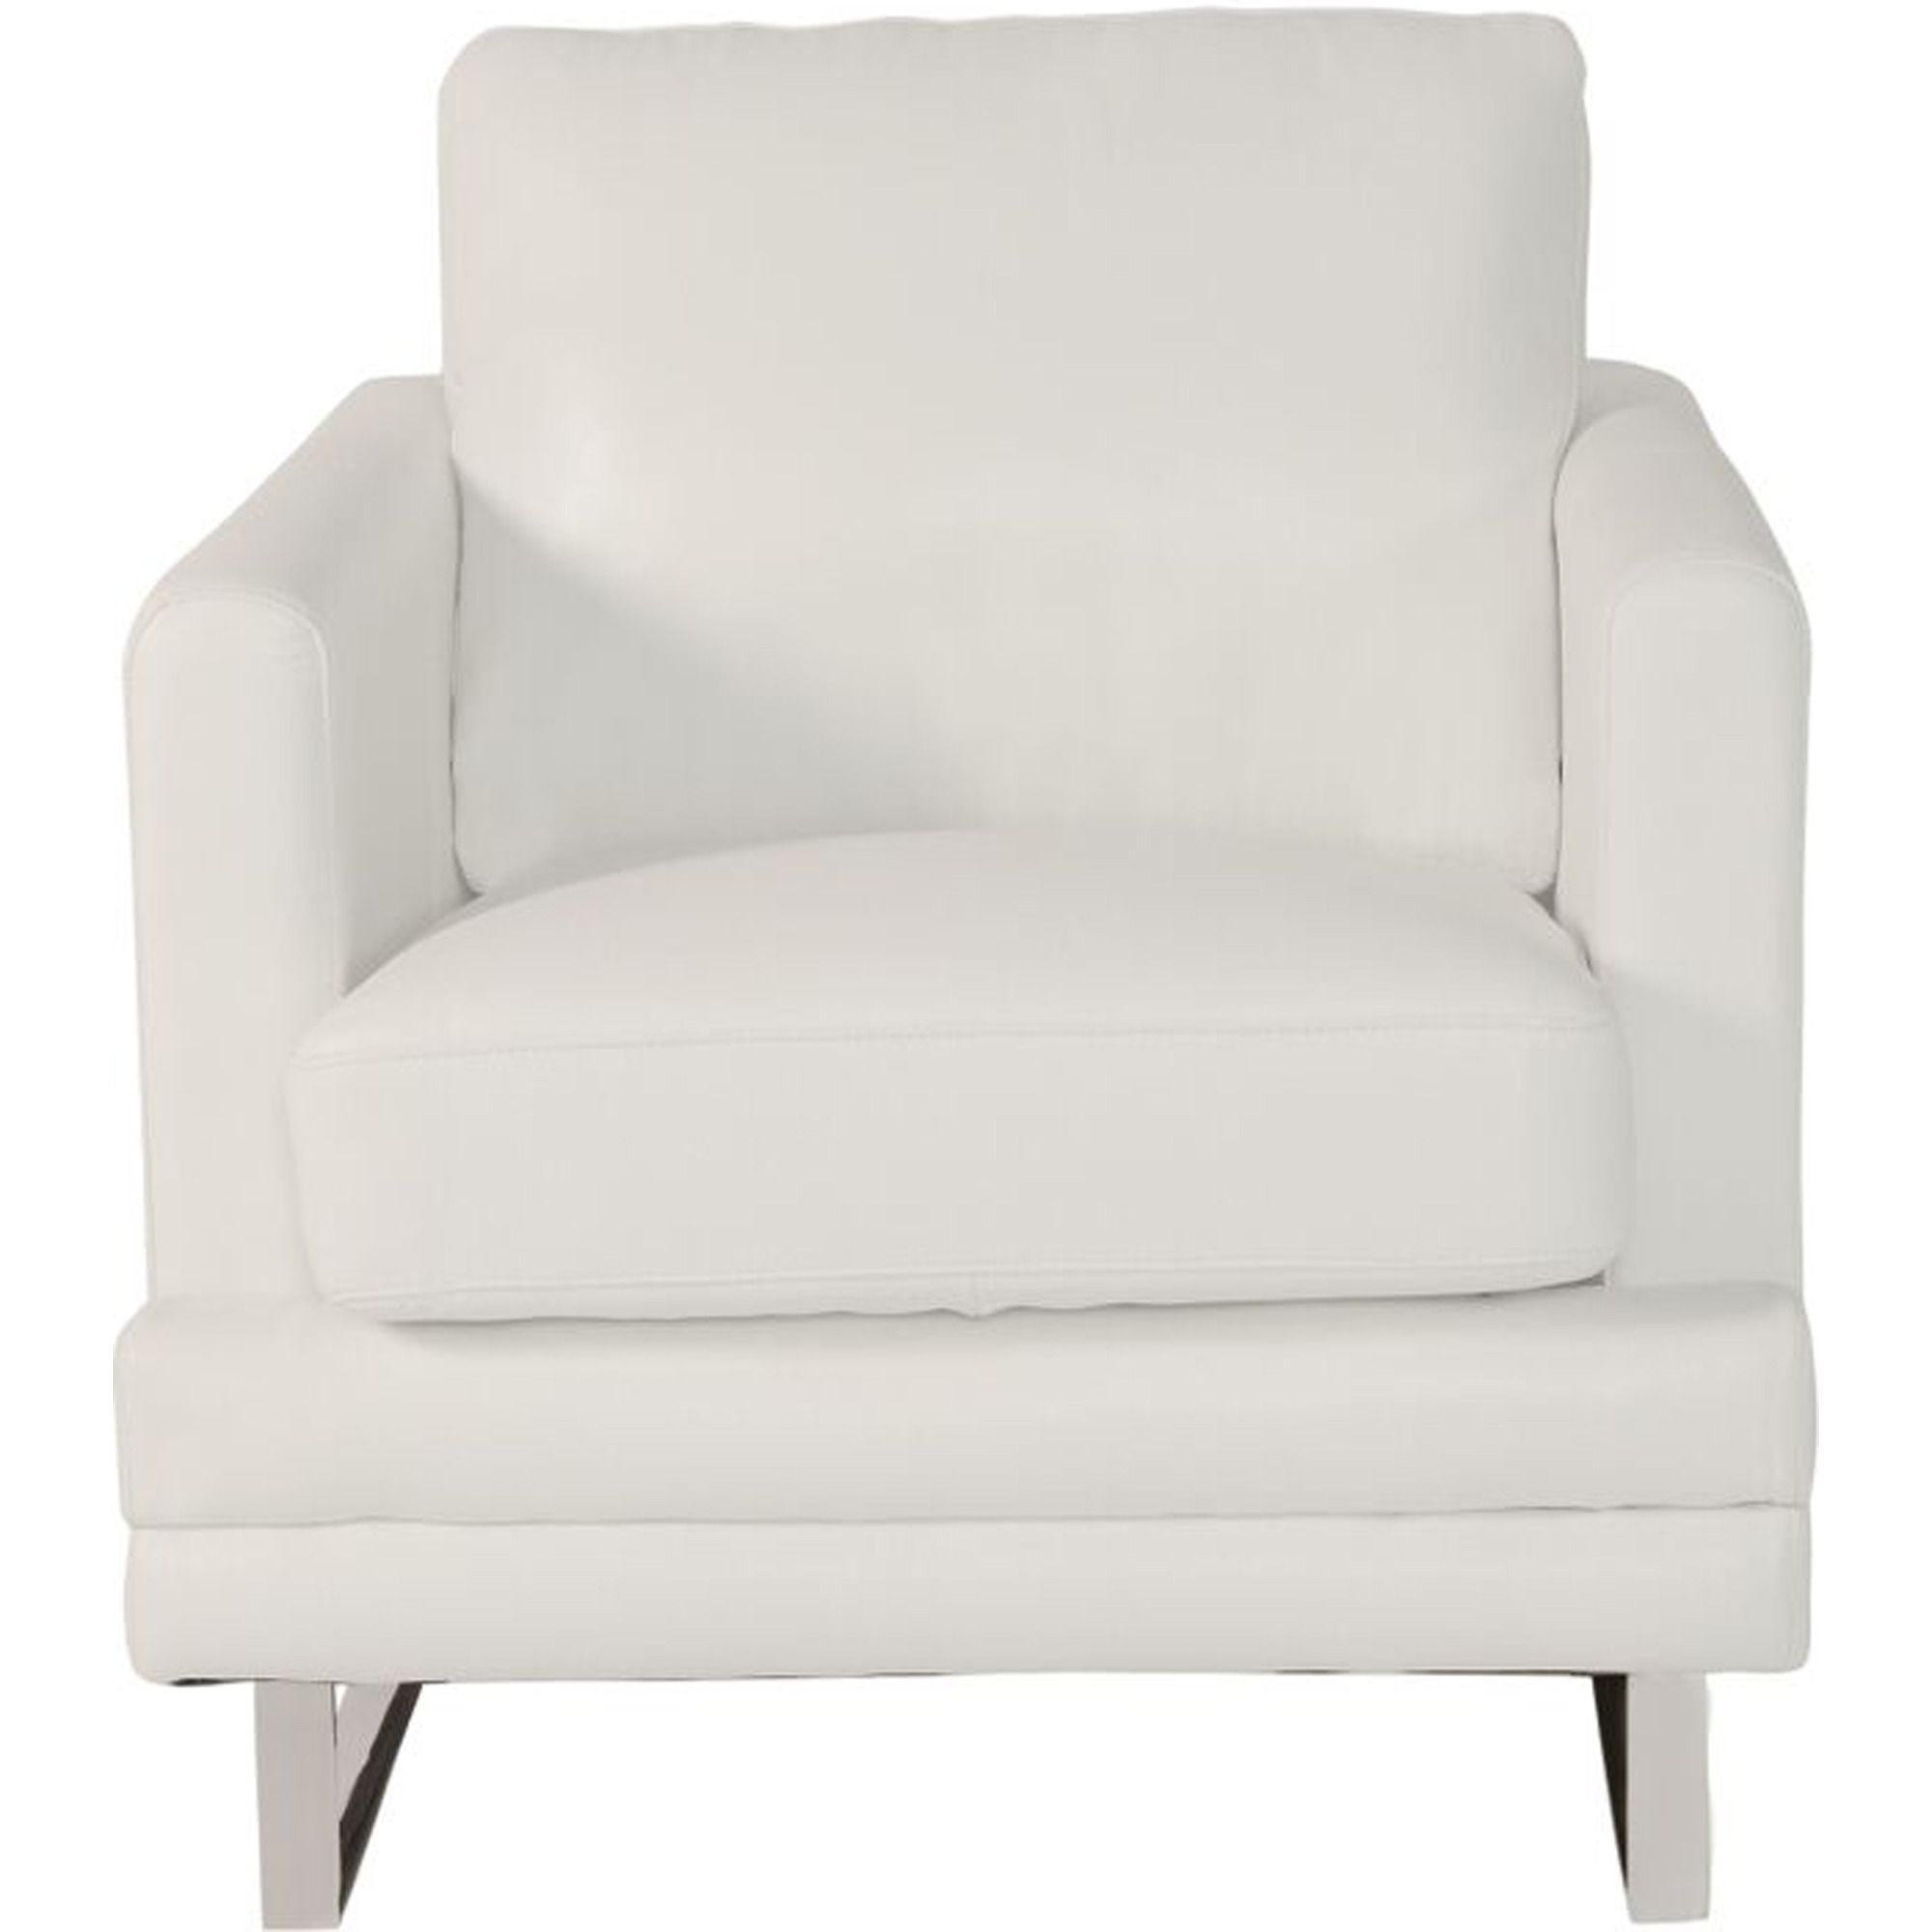 bedroom chair melbourne oak fabric dining chairs in white lazzaro leather home gallery